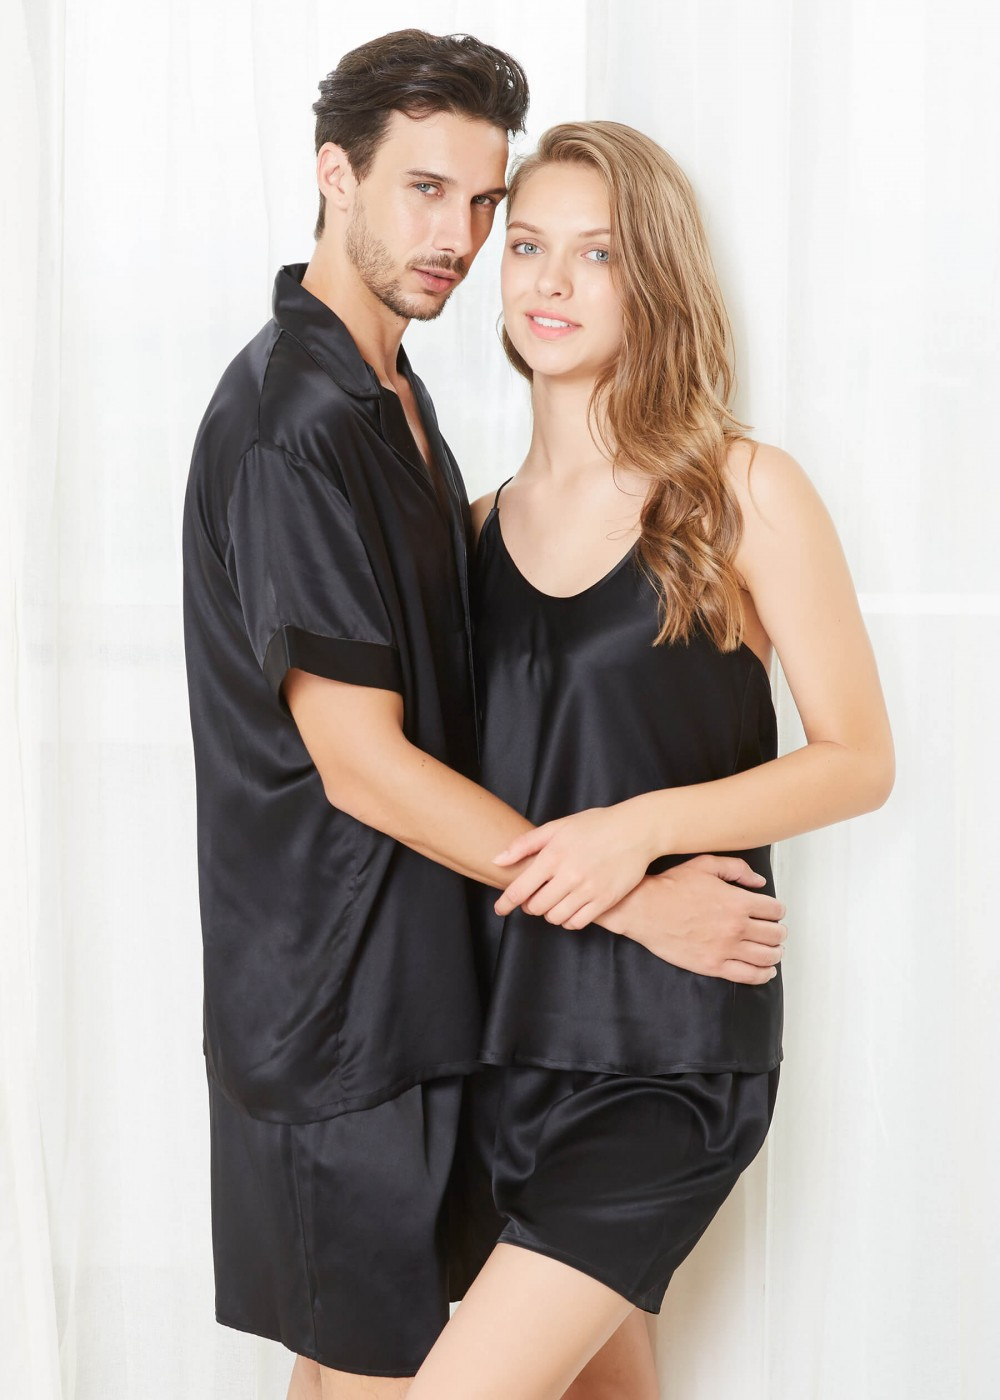 couple pajamas as wedding gift for best friend